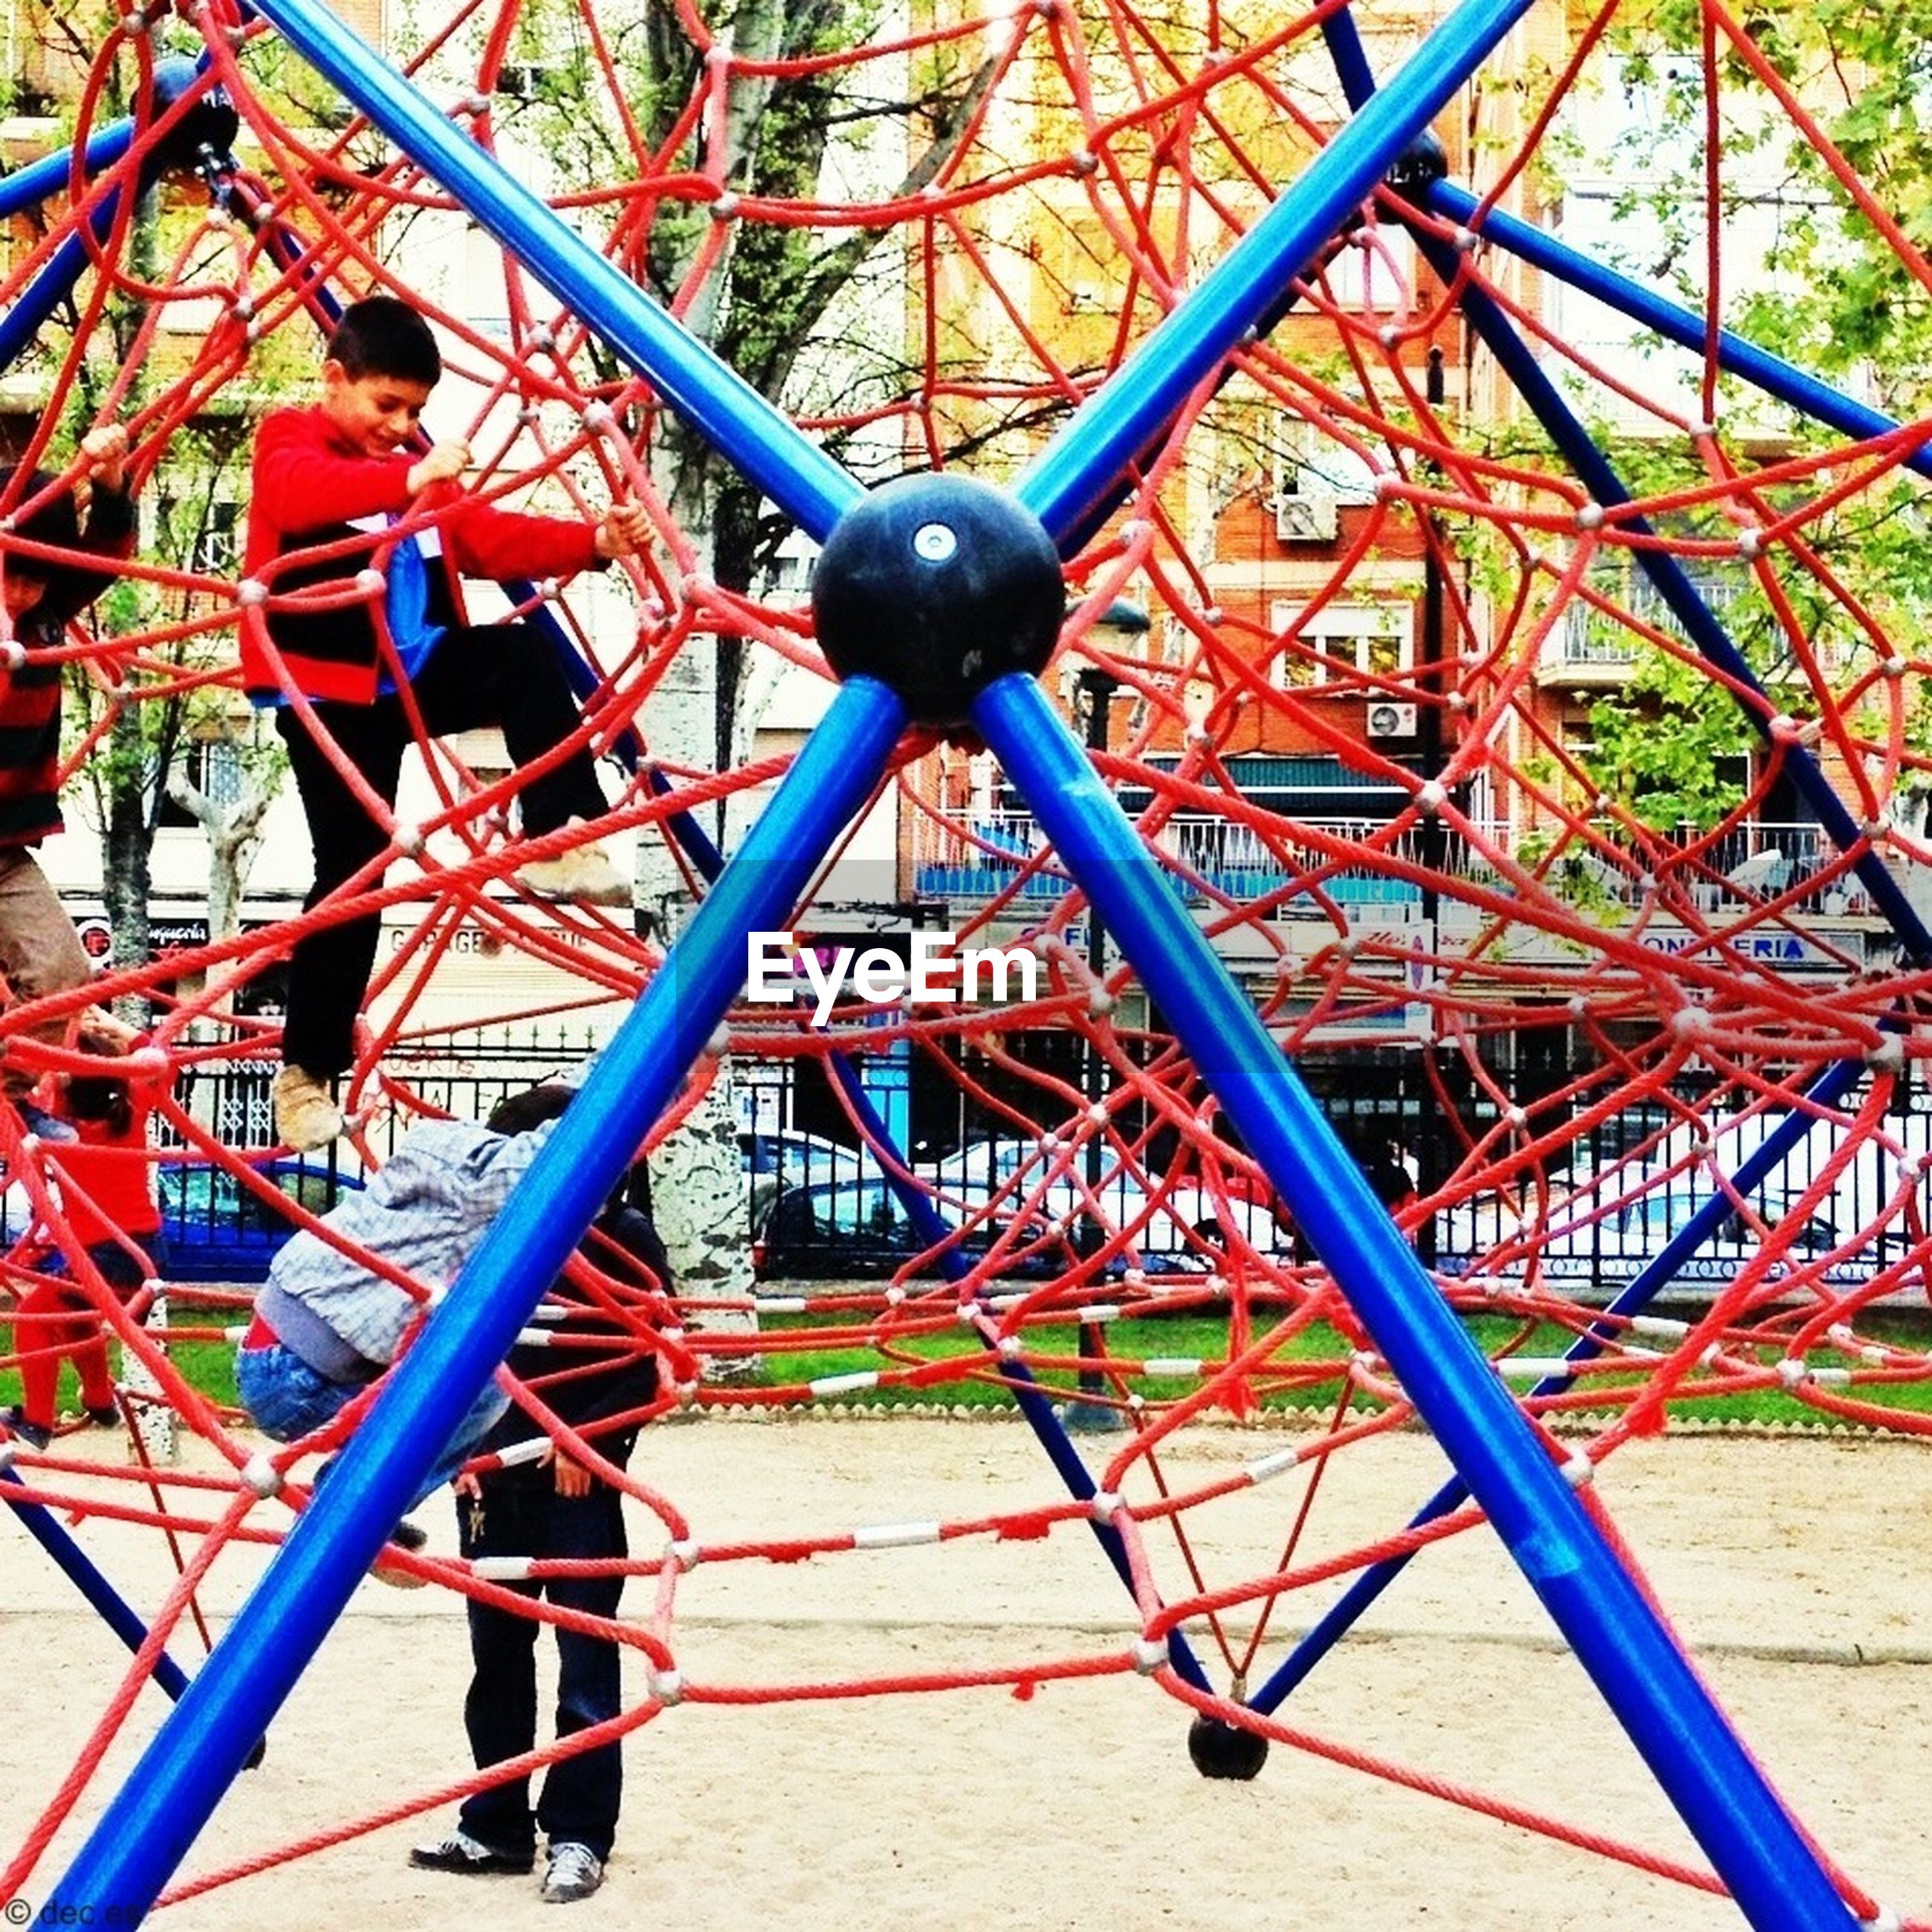 tree, leisure activity, lifestyles, metal, red, playground, childhood, transportation, park - man made space, amusement park, travel, day, bicycle, railing, metallic, casual clothing, mode of transport, sunlight